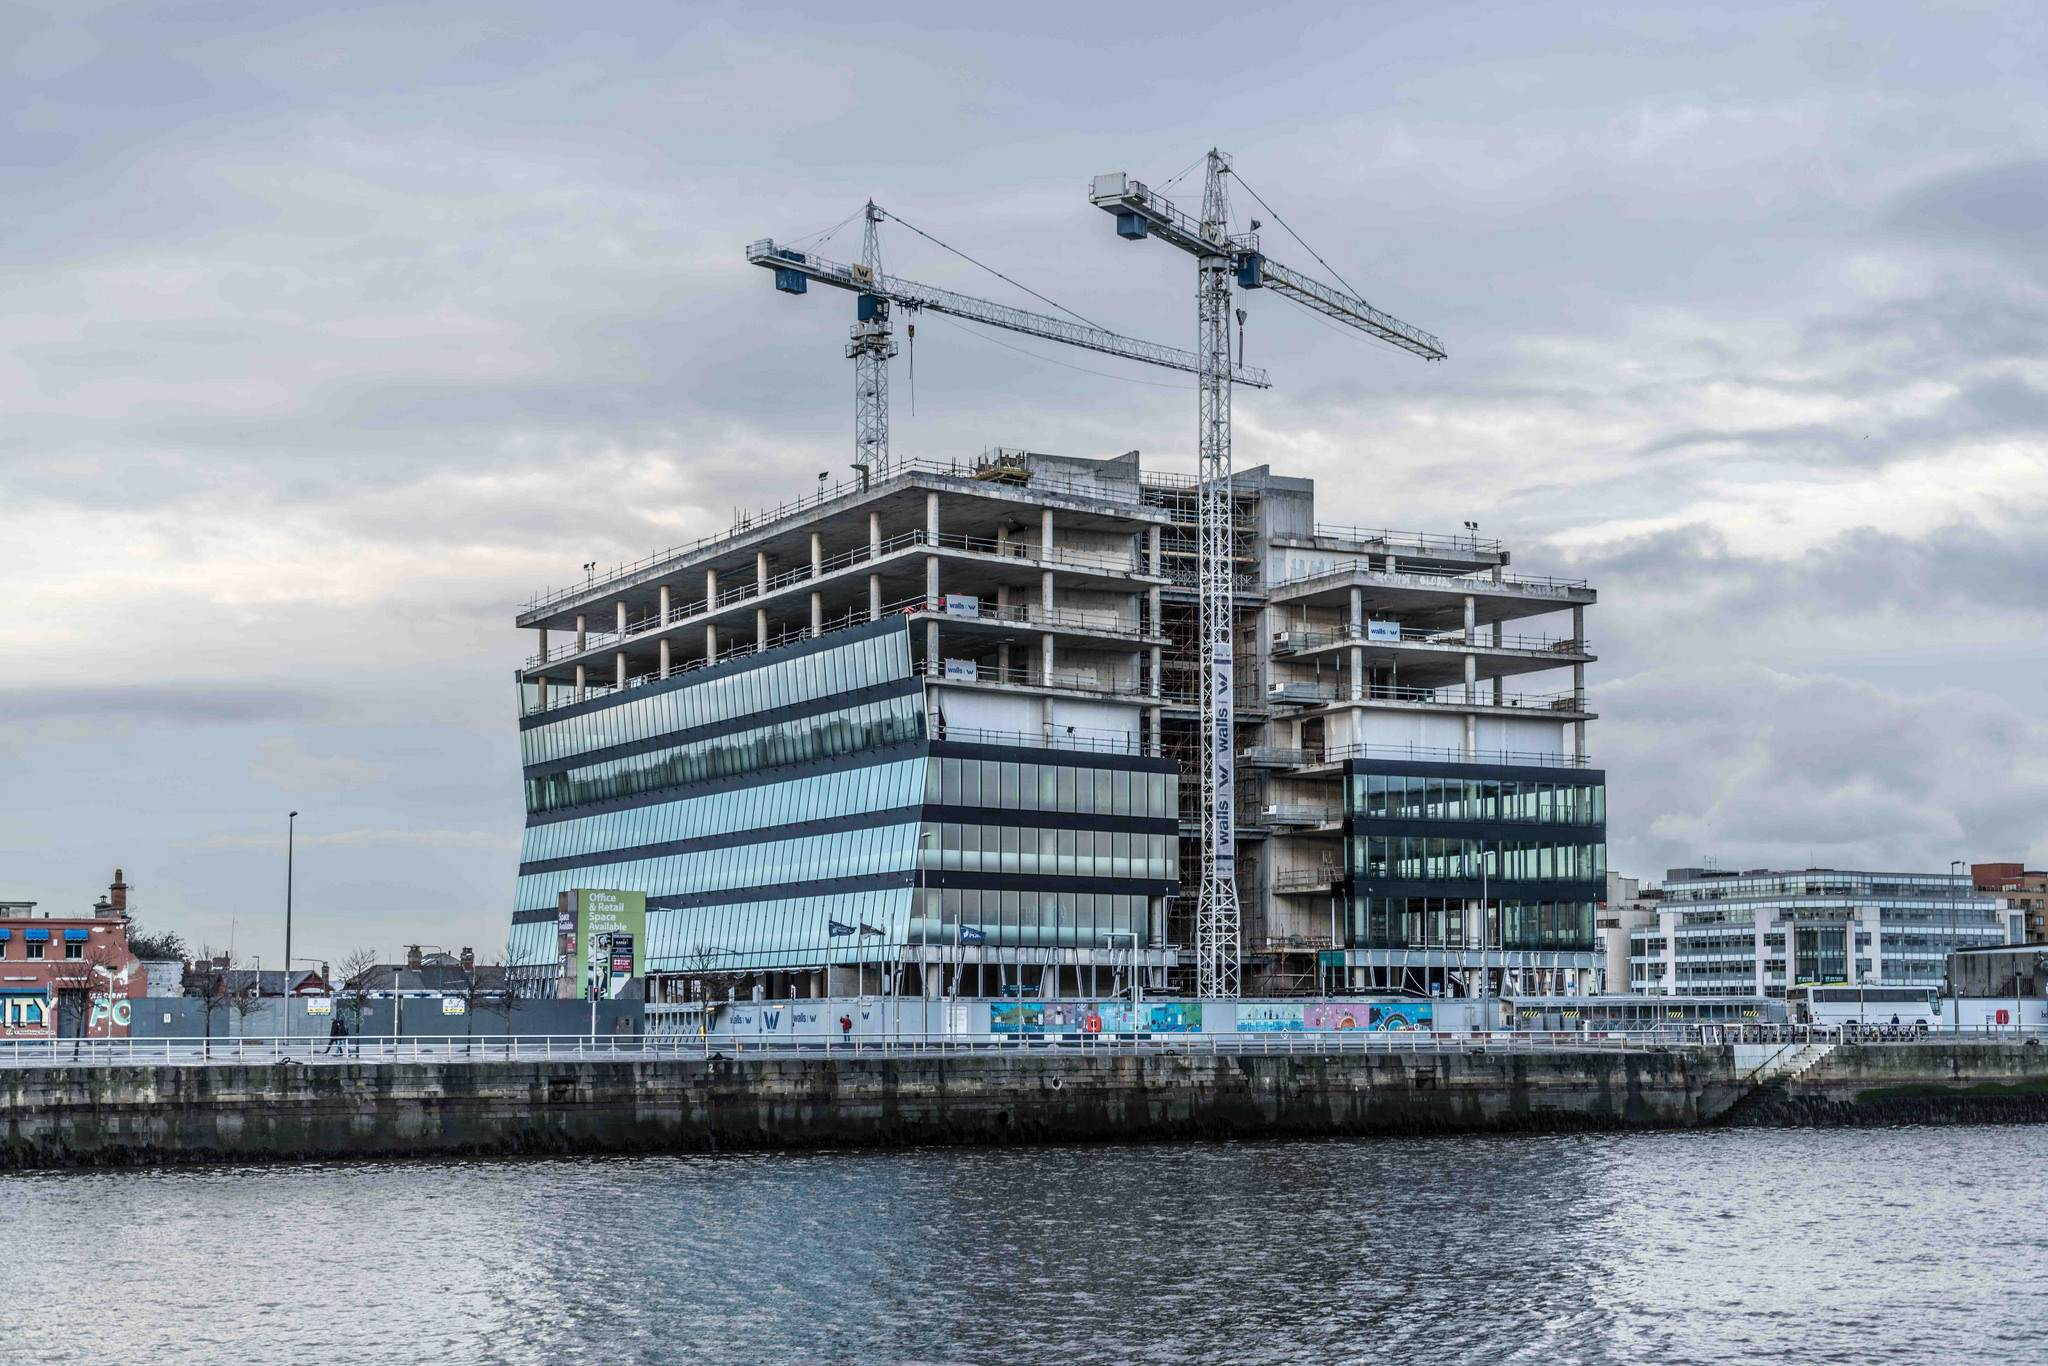 dublin docklands10 Walking Around Dublin Docklands by Marphy